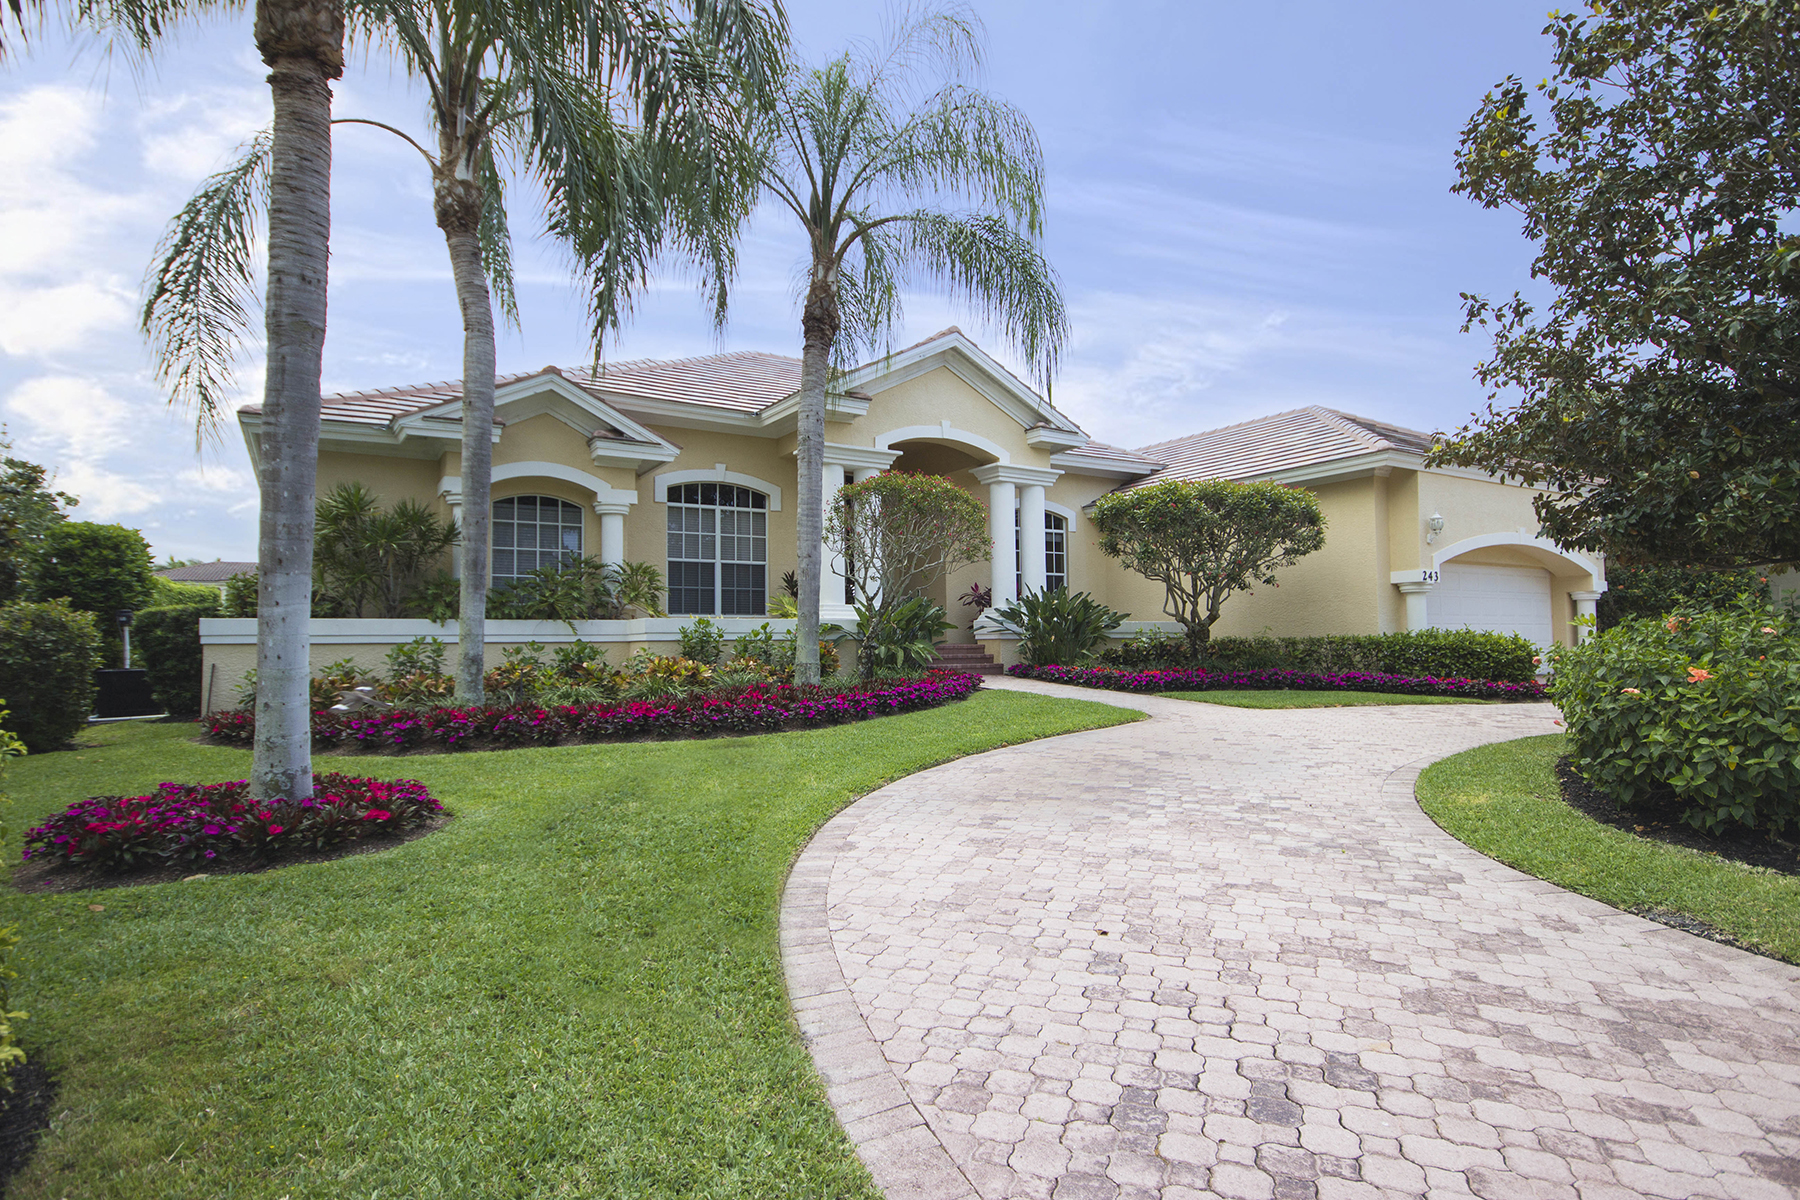 Single Family Home for Sale at Park Shore - Naples 243 Mermaids Bight, Naples, Florida 34103 United States